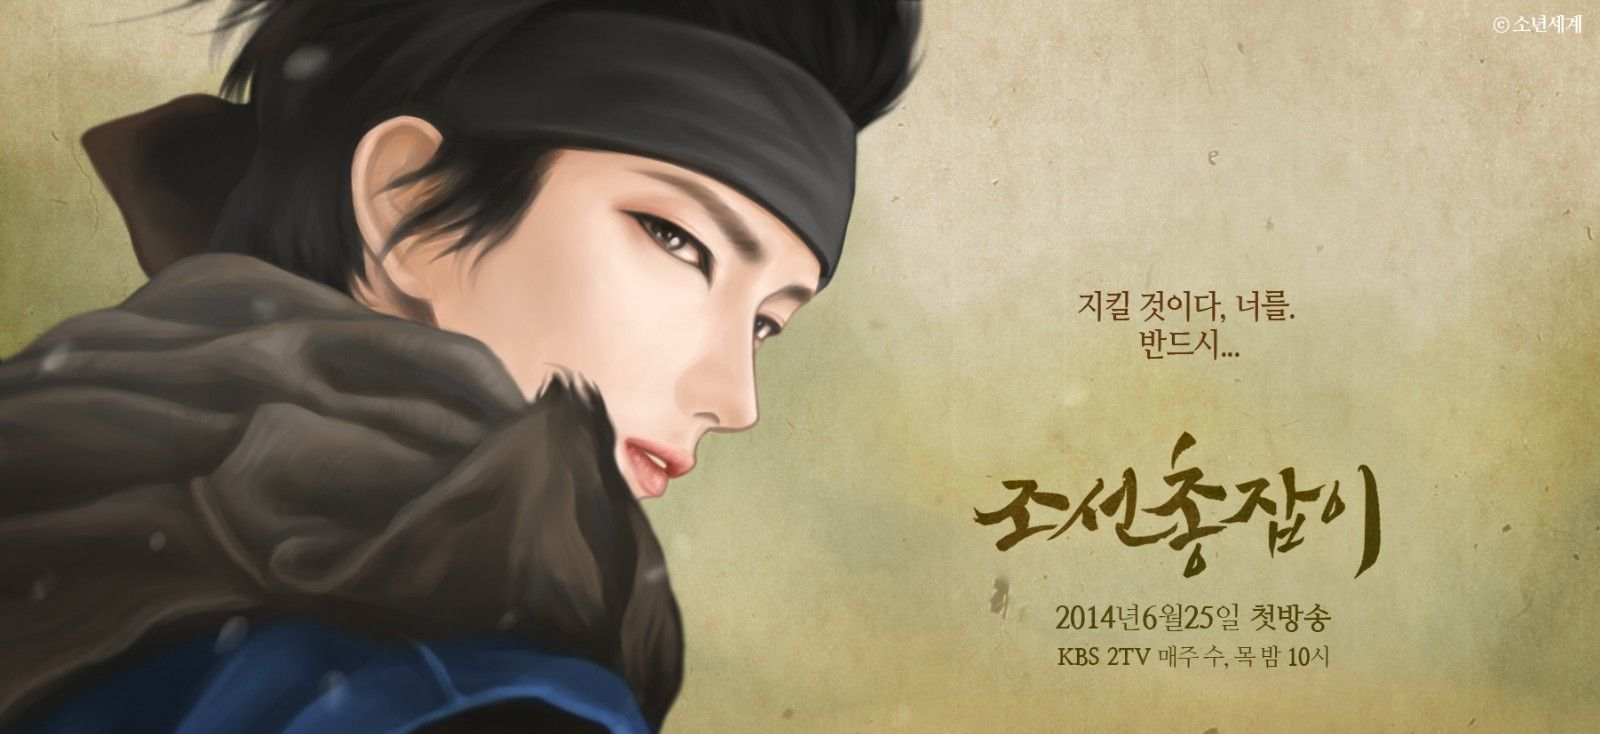 Drama 2014] Gunman in Joseon 조선 총잡이 - Page 27 - soompi